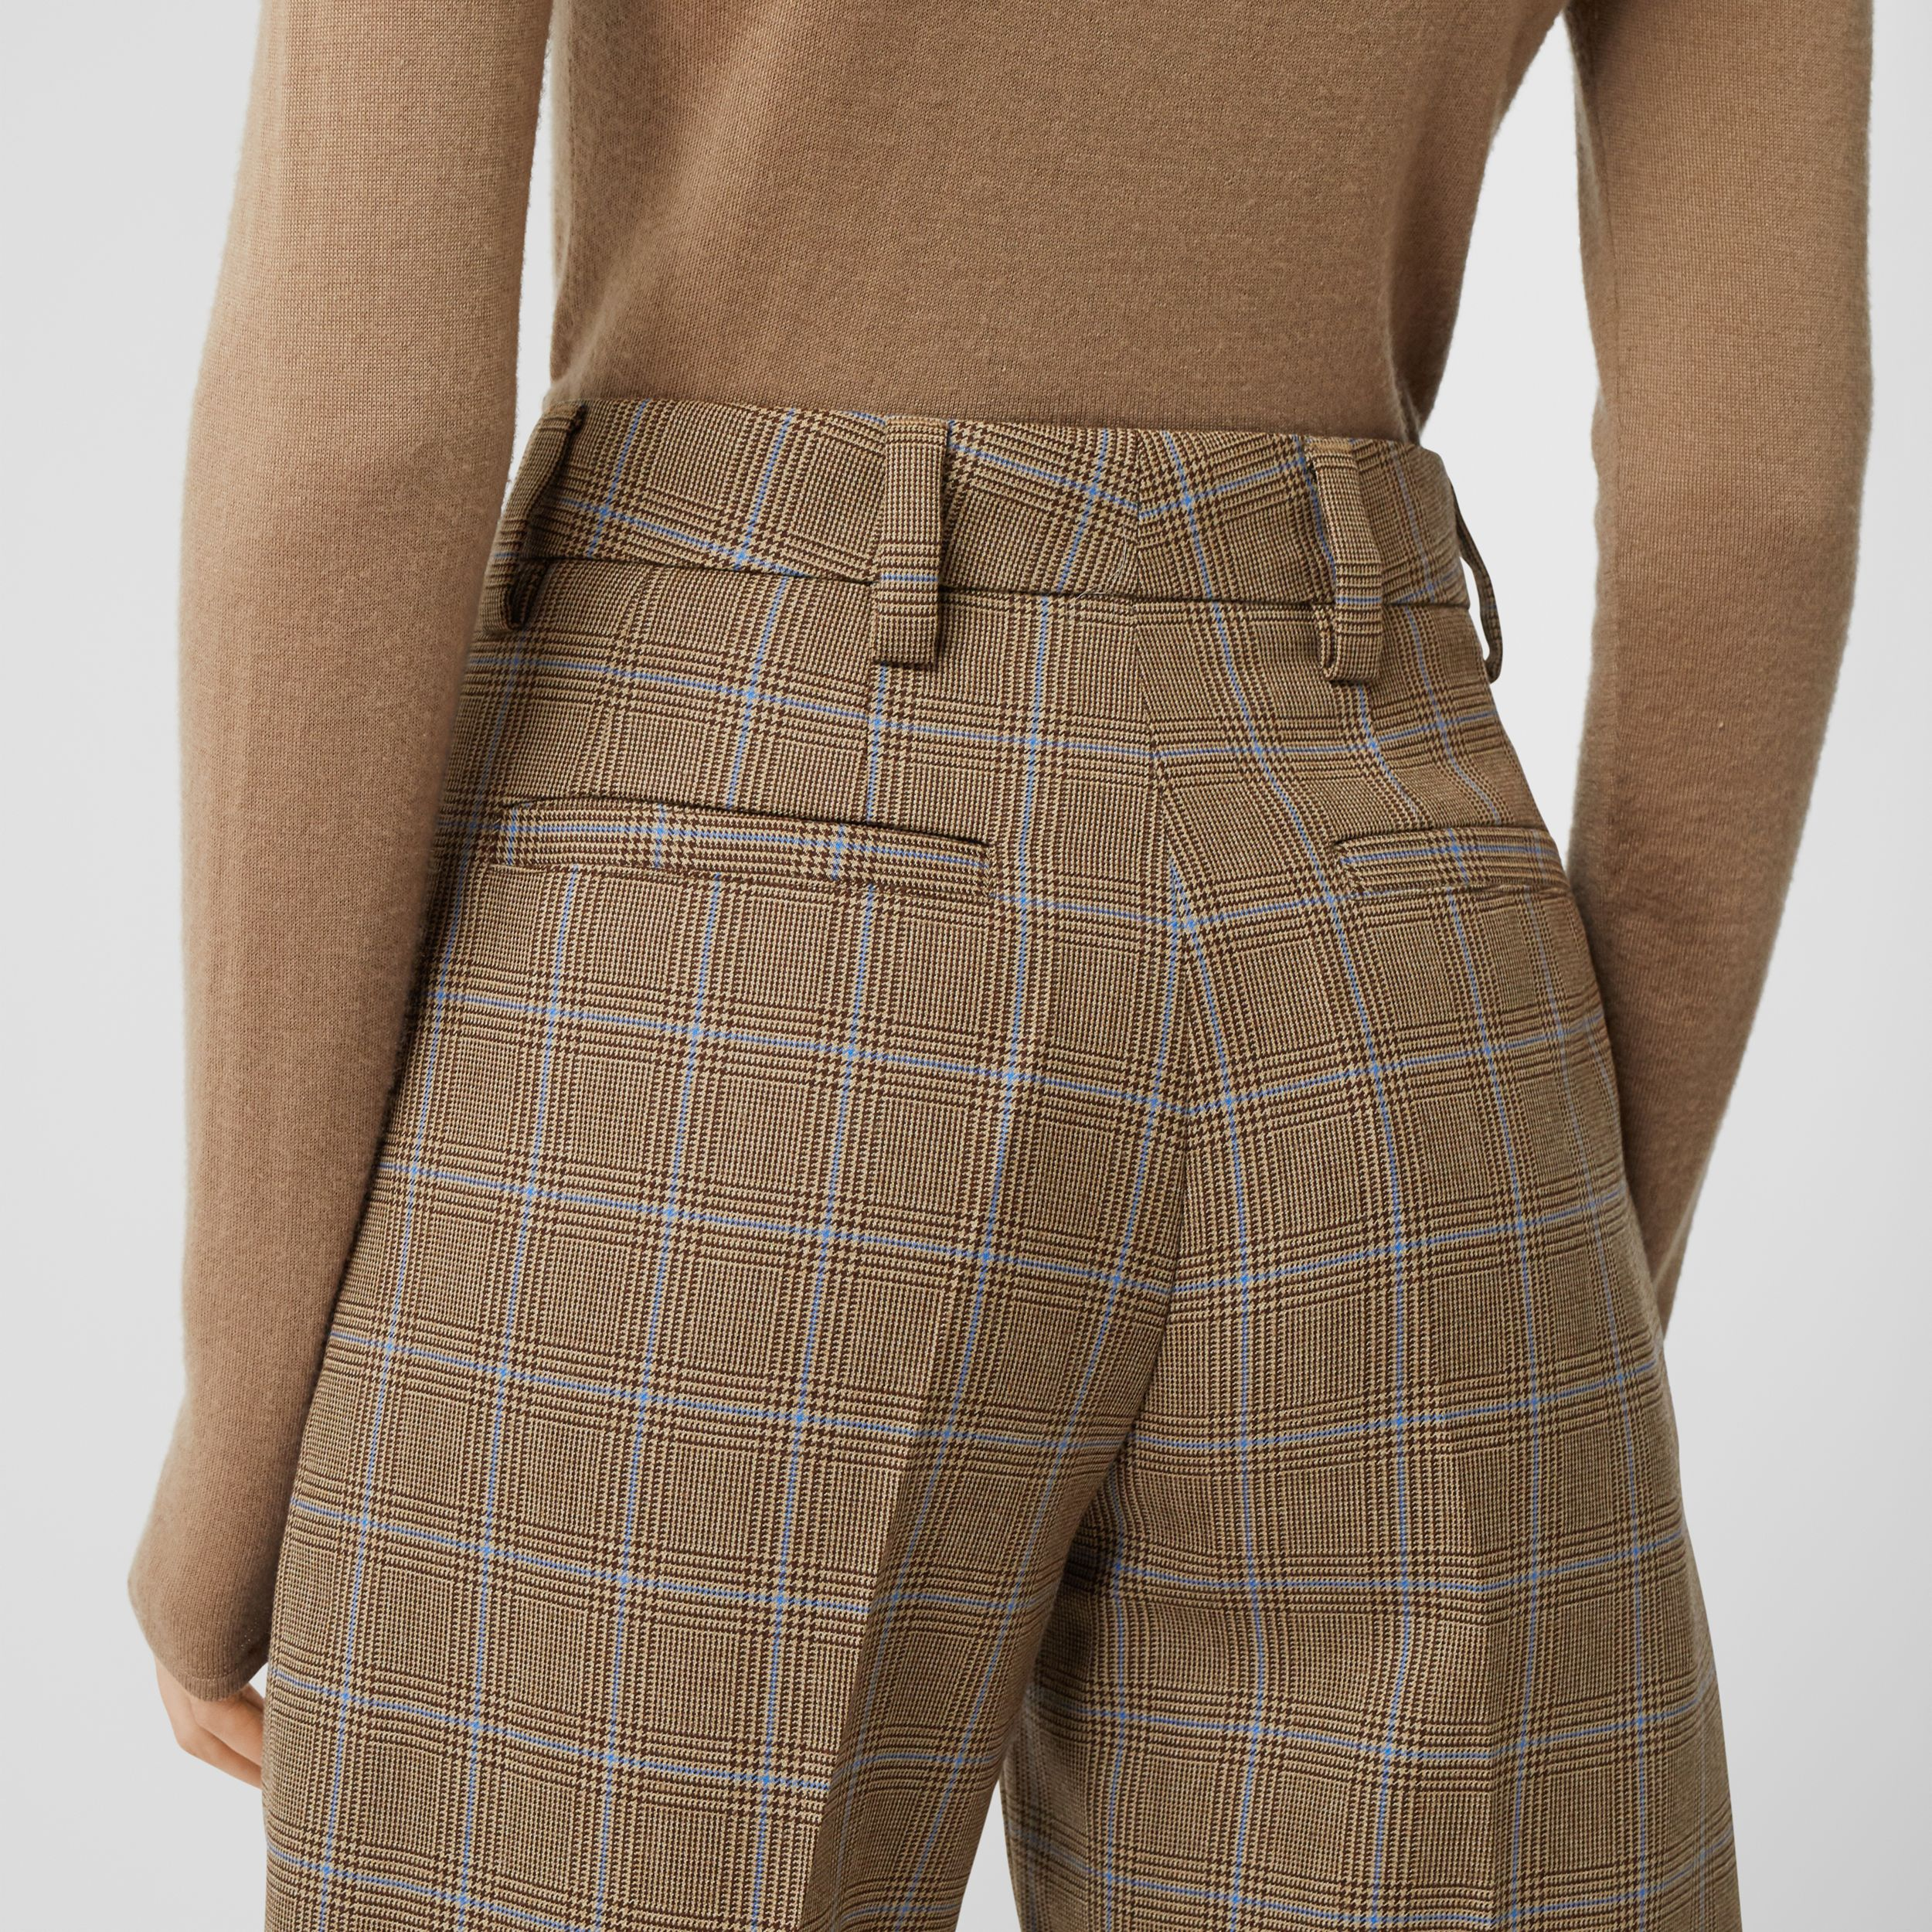 Pocket Detail Prince of Wales Check Wool Shorts in Birch Brown - Women | Burberry - 2